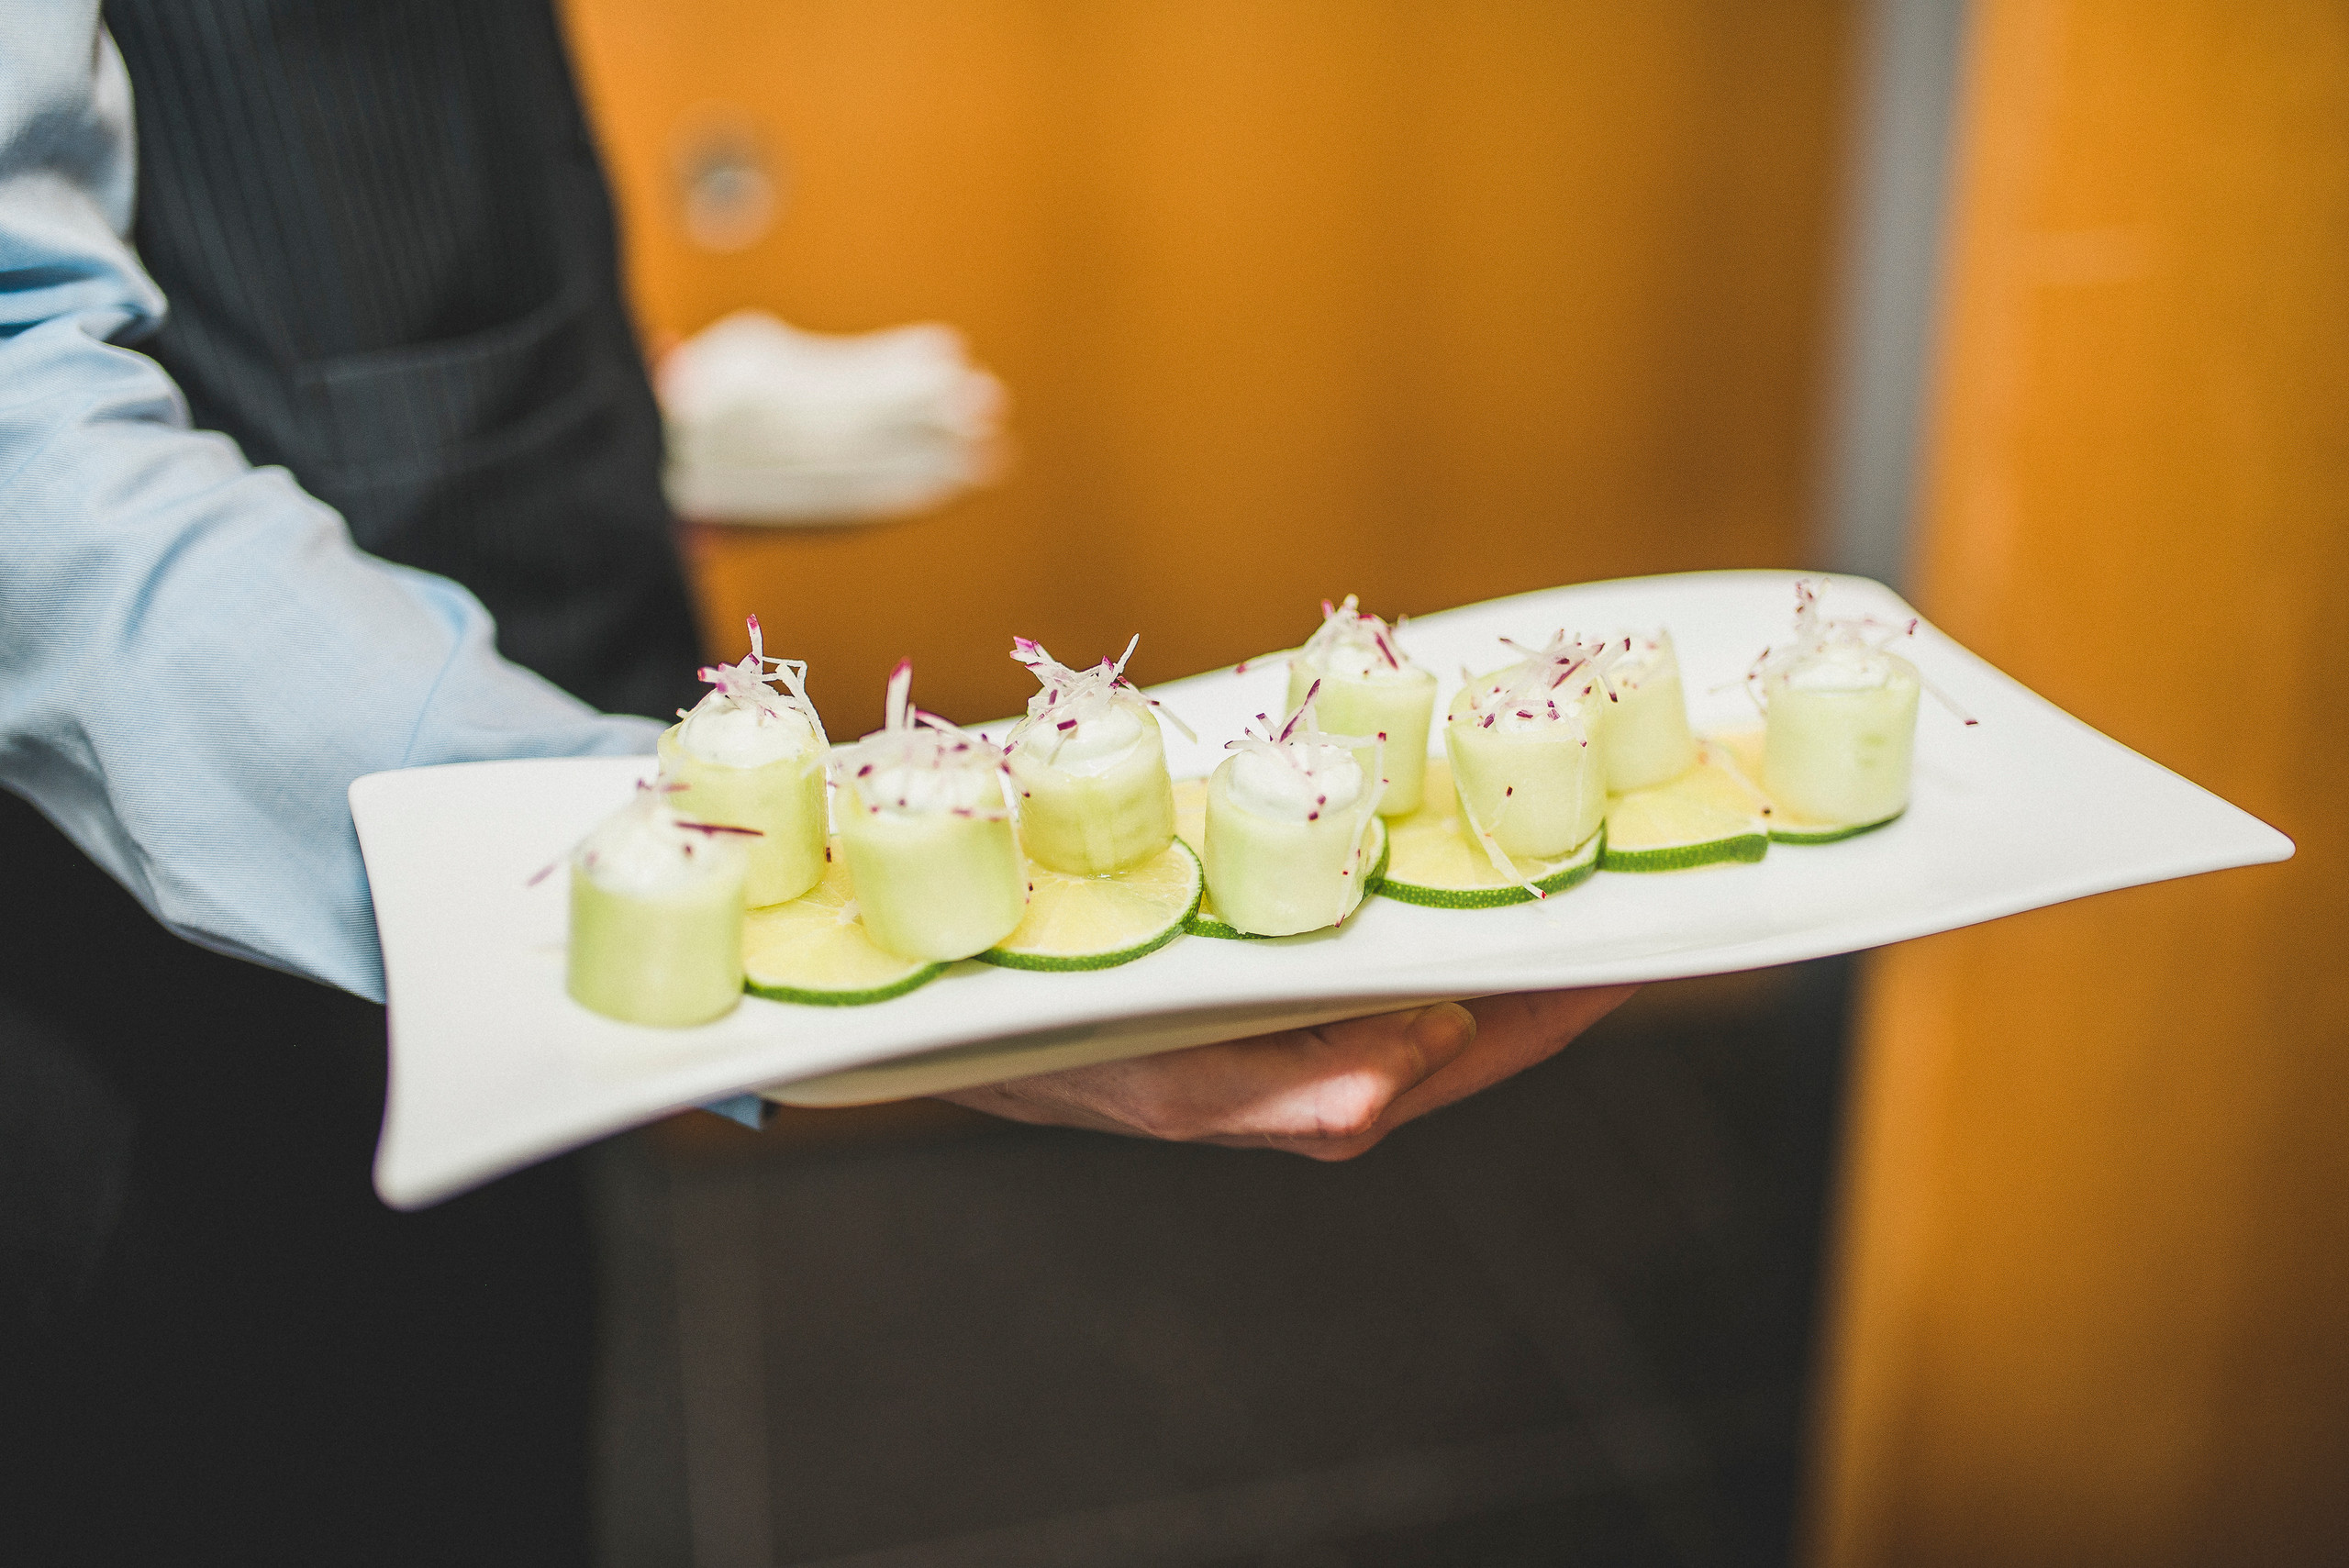 Food at The Modern NYC manhattan hors d'oeuvres wedding reception server food